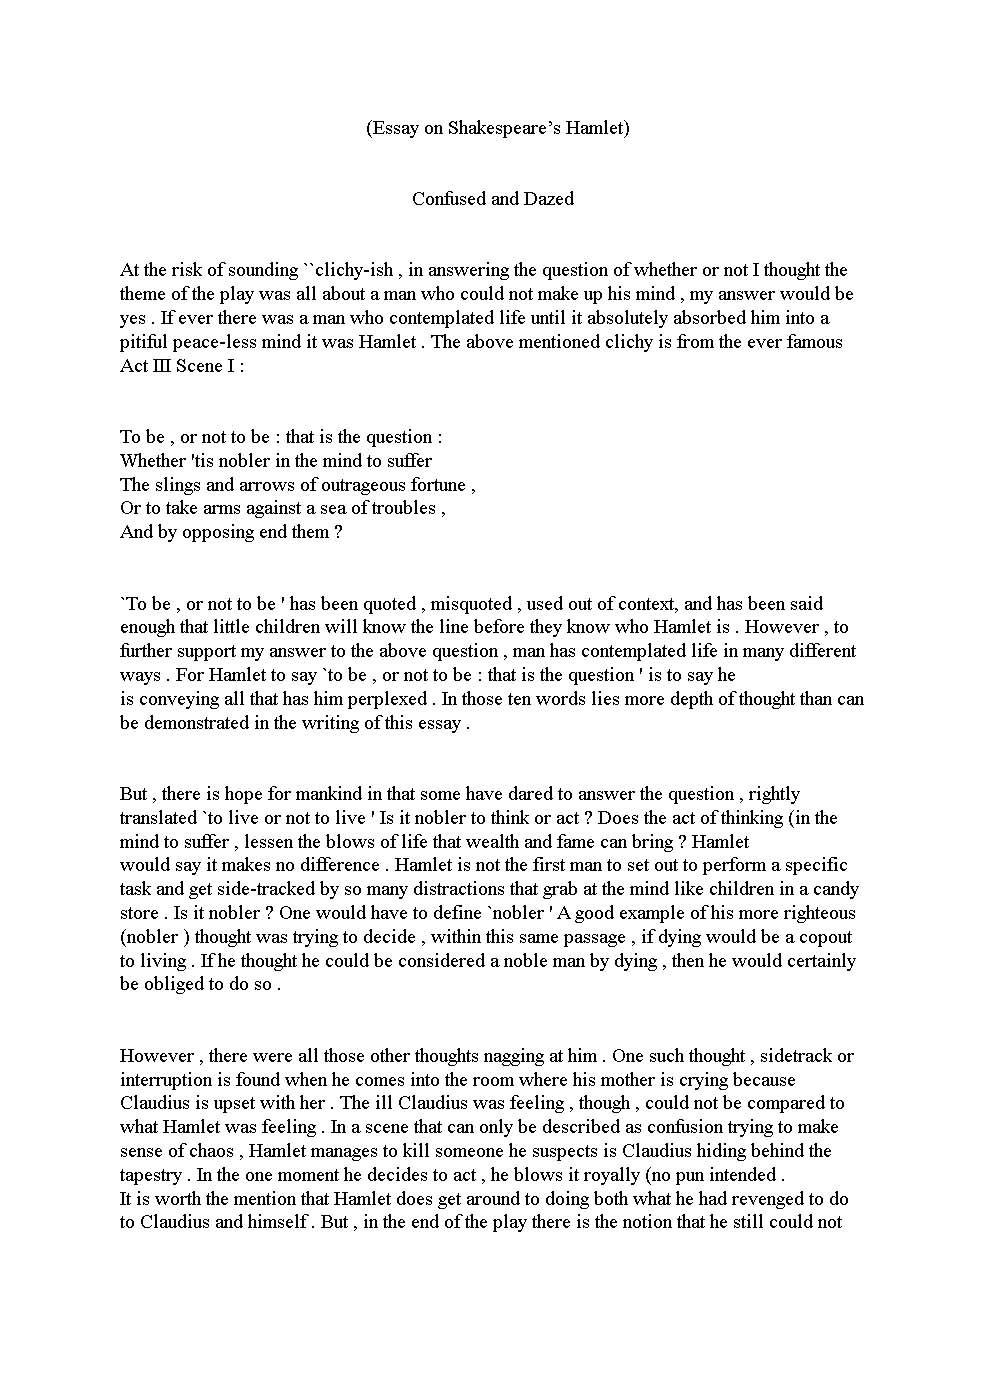 007 Drama Essay Sample Shorts Breathtaking Short Examples For Students Argumentative High School Full